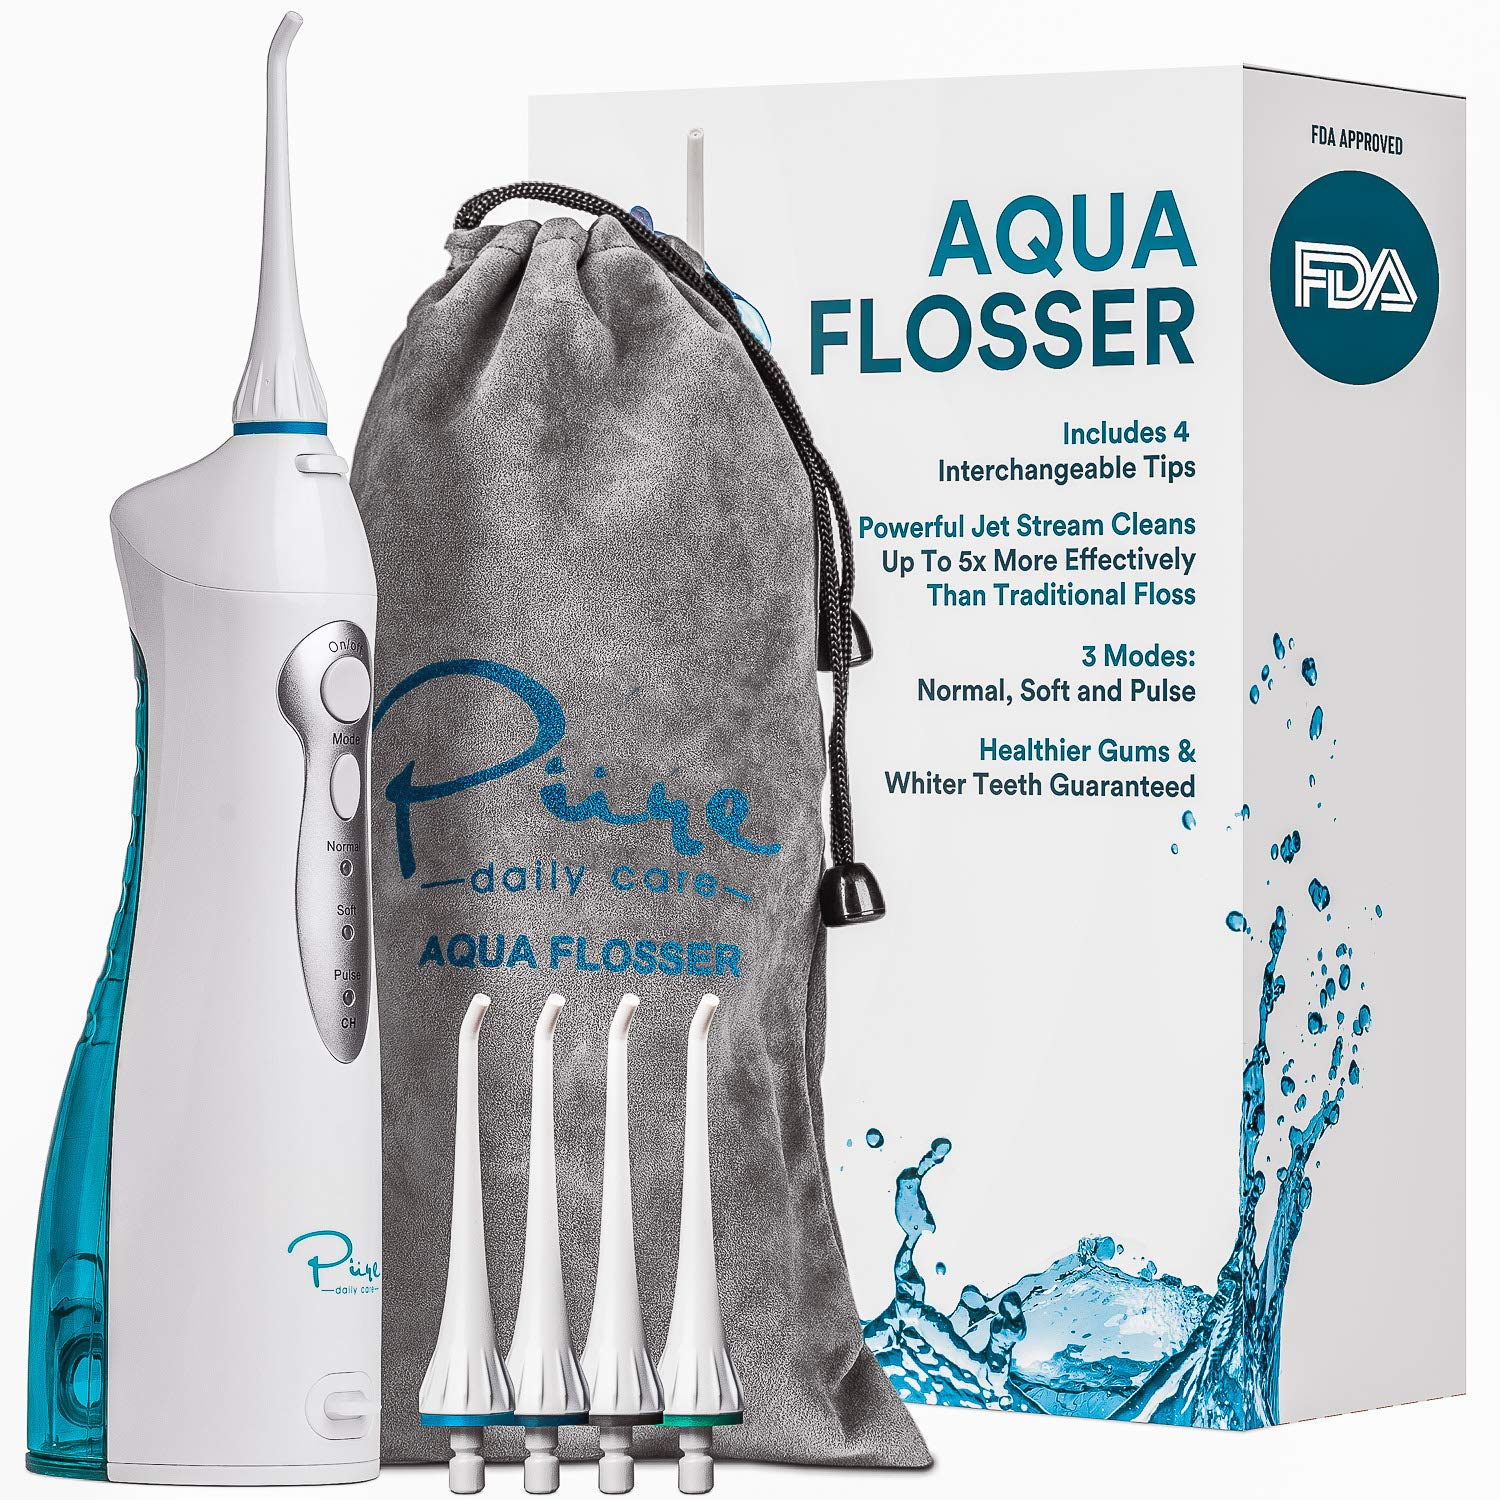 AquaSonic Aqua Flosser - Professional Cordless Oral Irrigator with 4 Tips and Travel Bag, IPX7 Waterproof with 3 Modes by Aquasonic